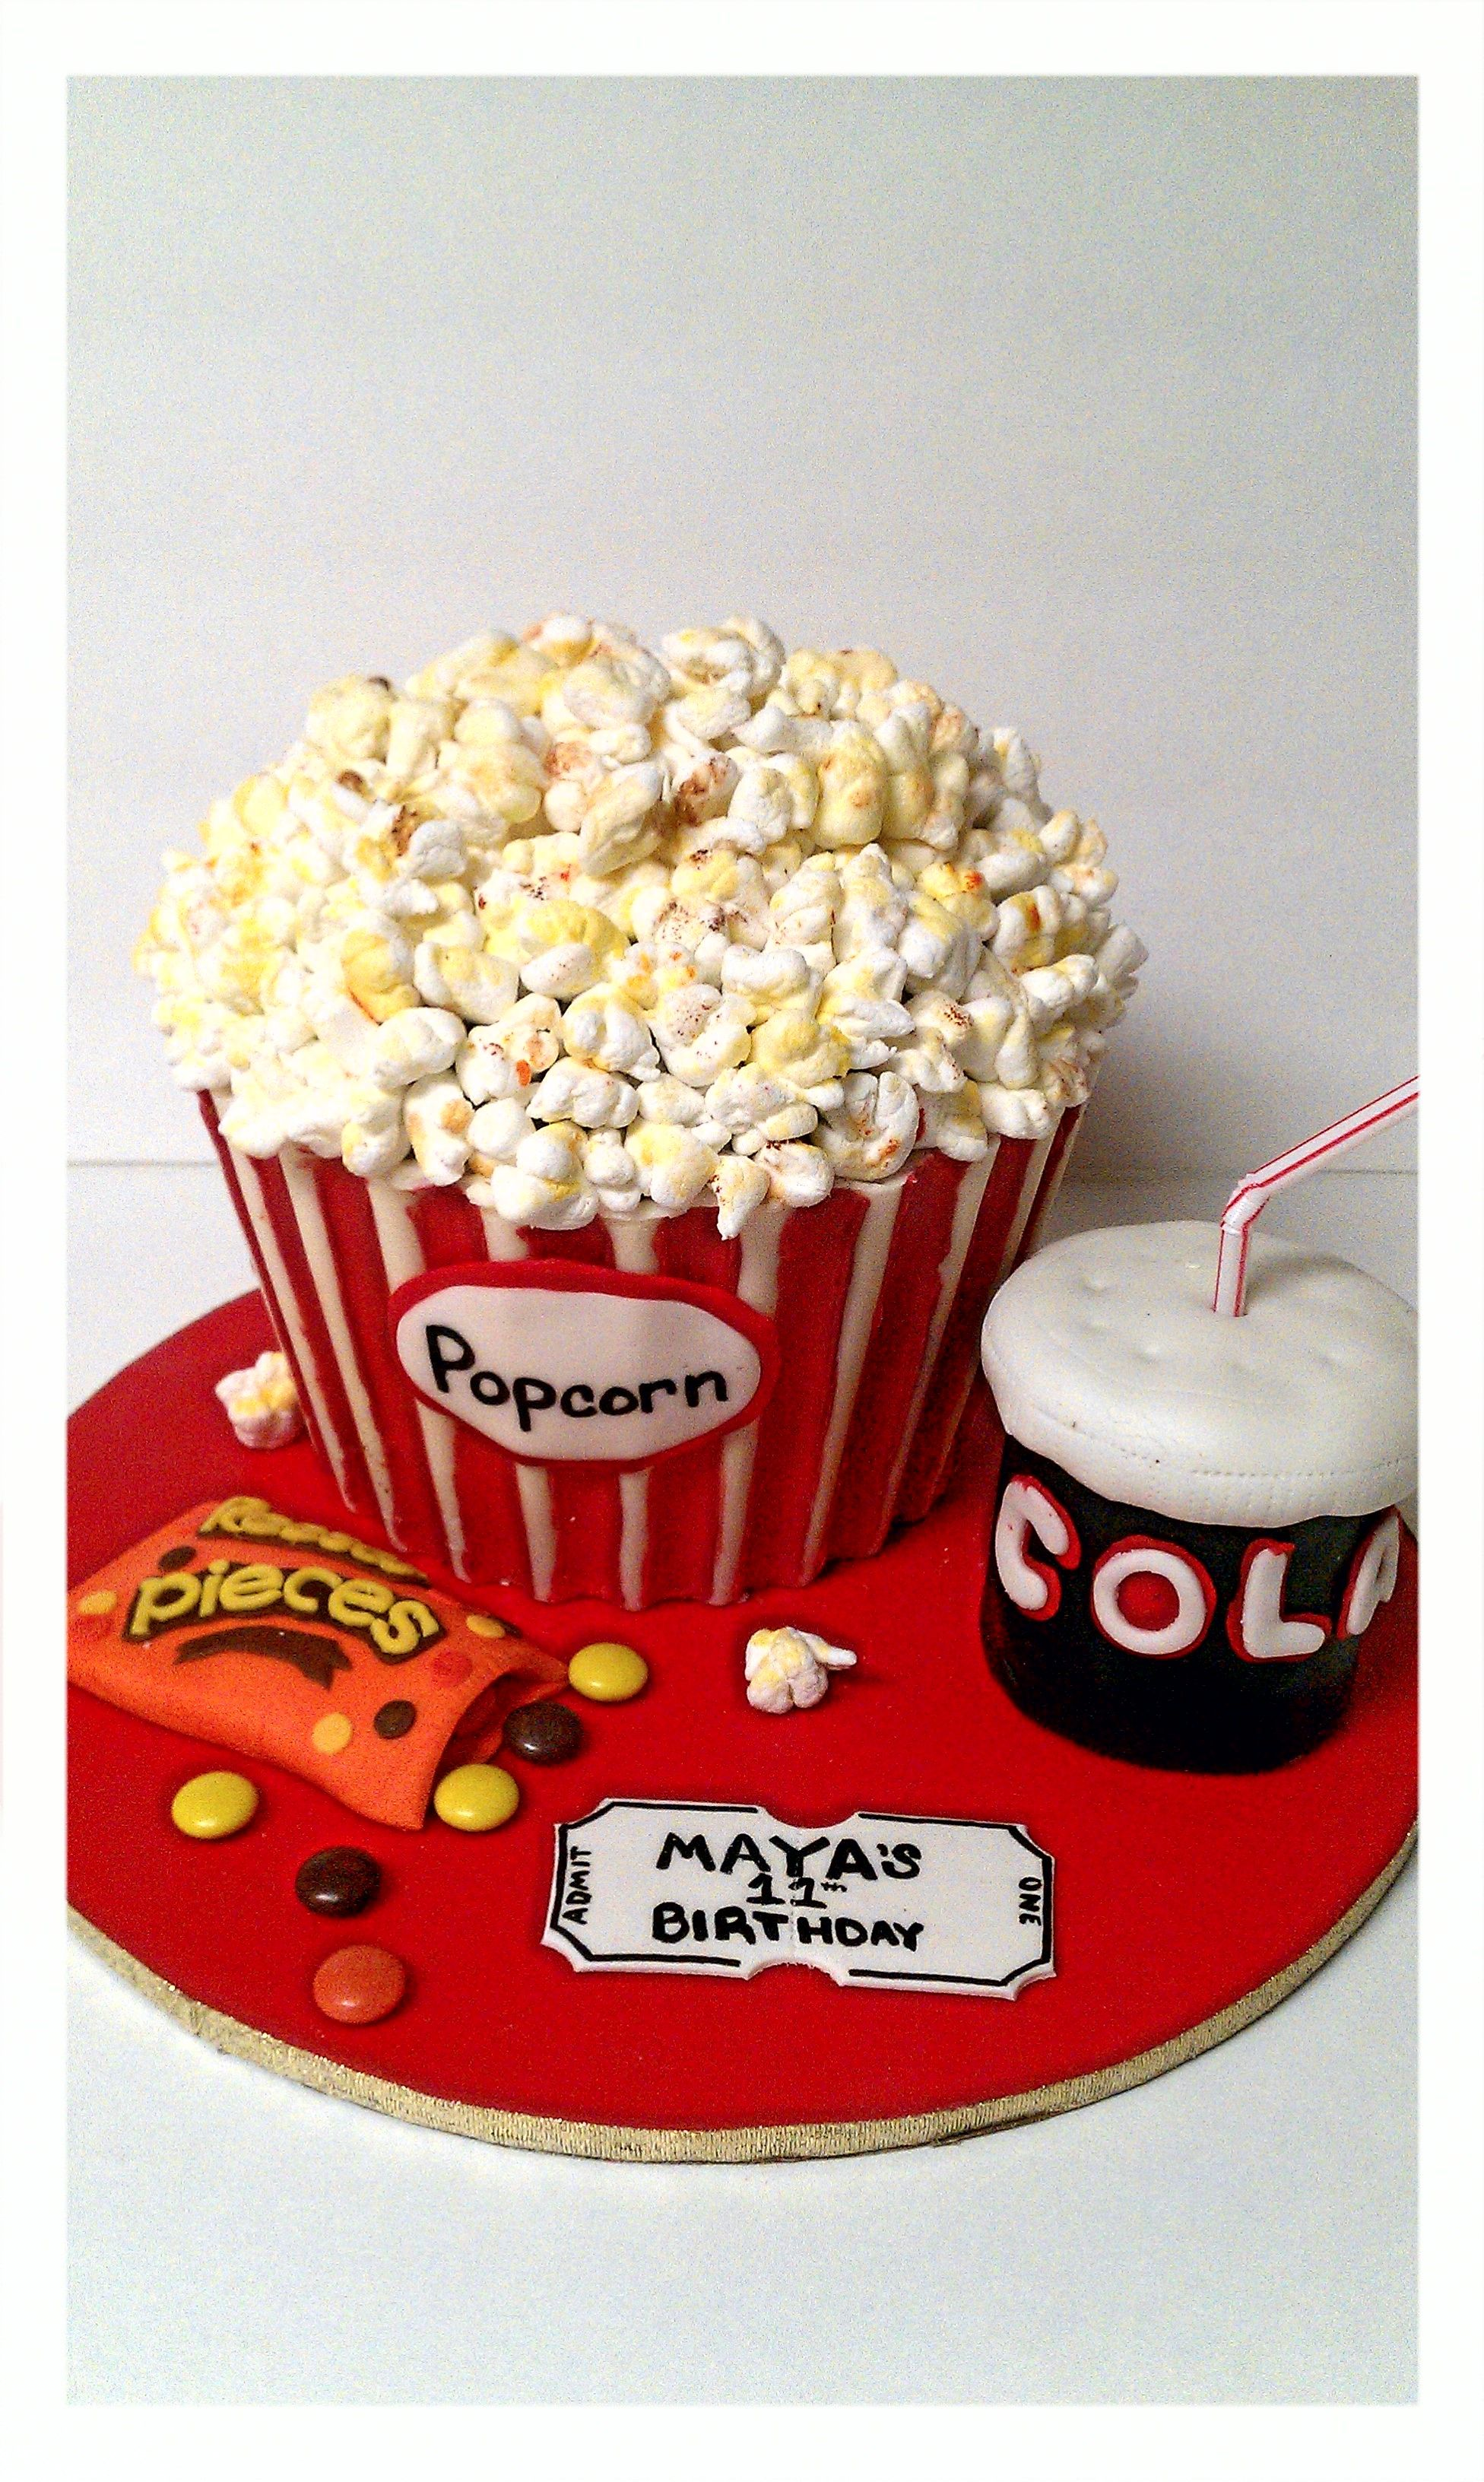 The Popcorn Bucket Is Made Of Chocolate Cake With Cookies